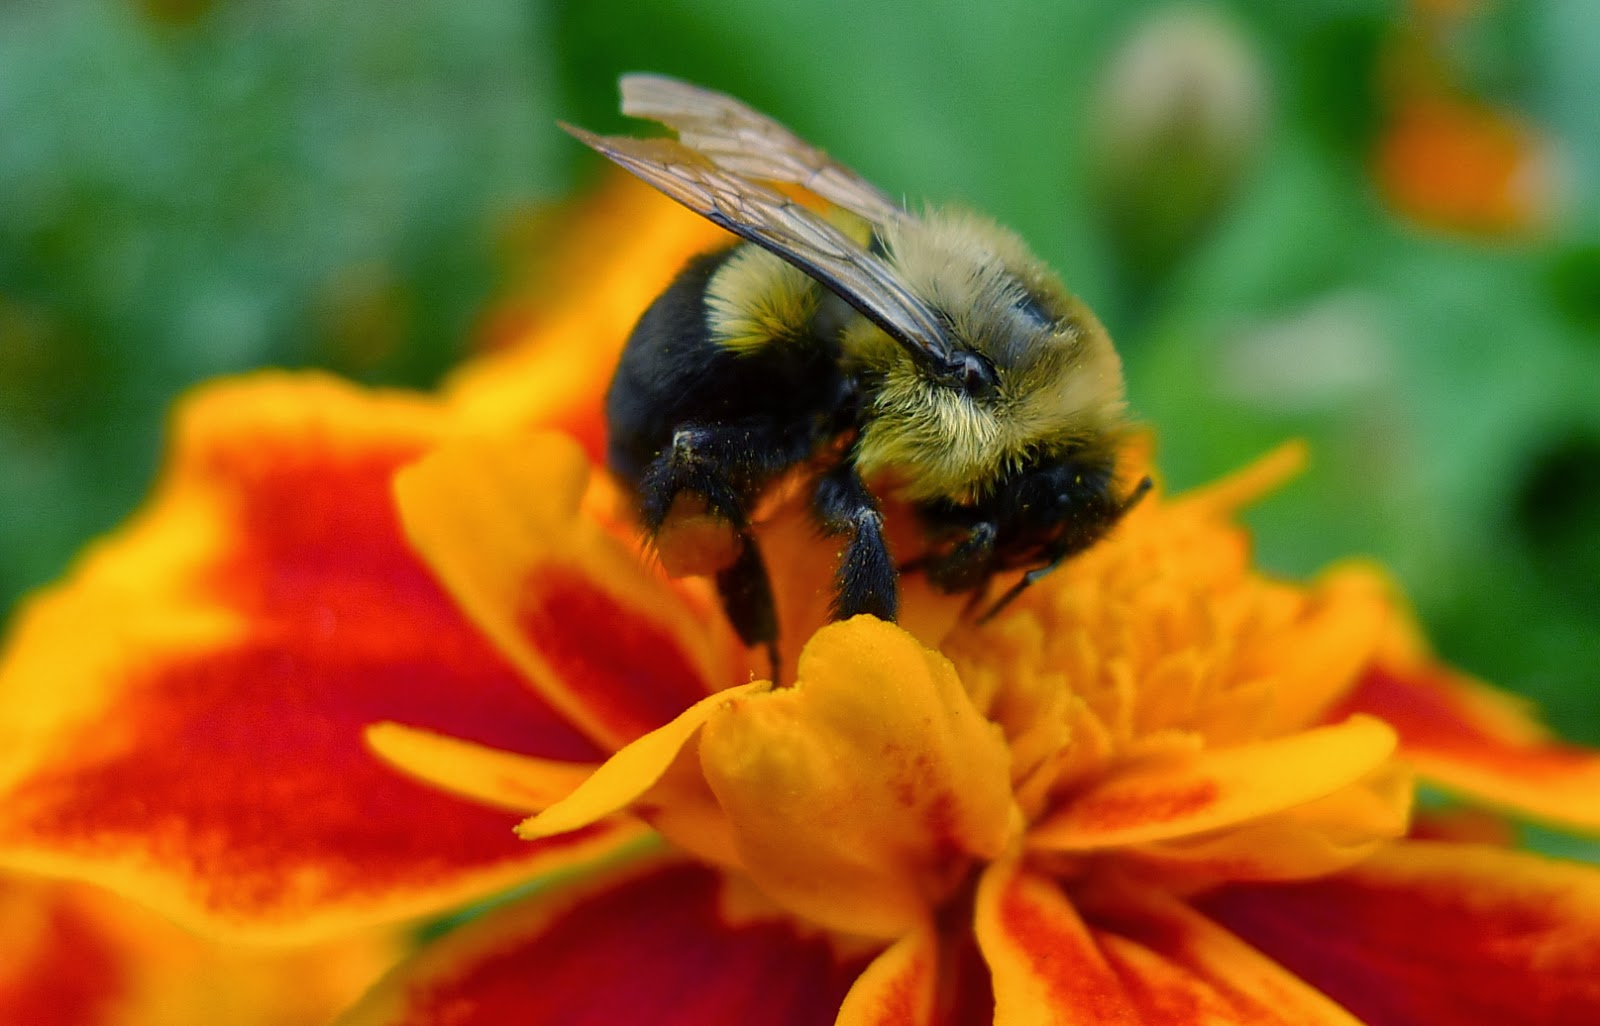 urban bees, flowers to attract bees